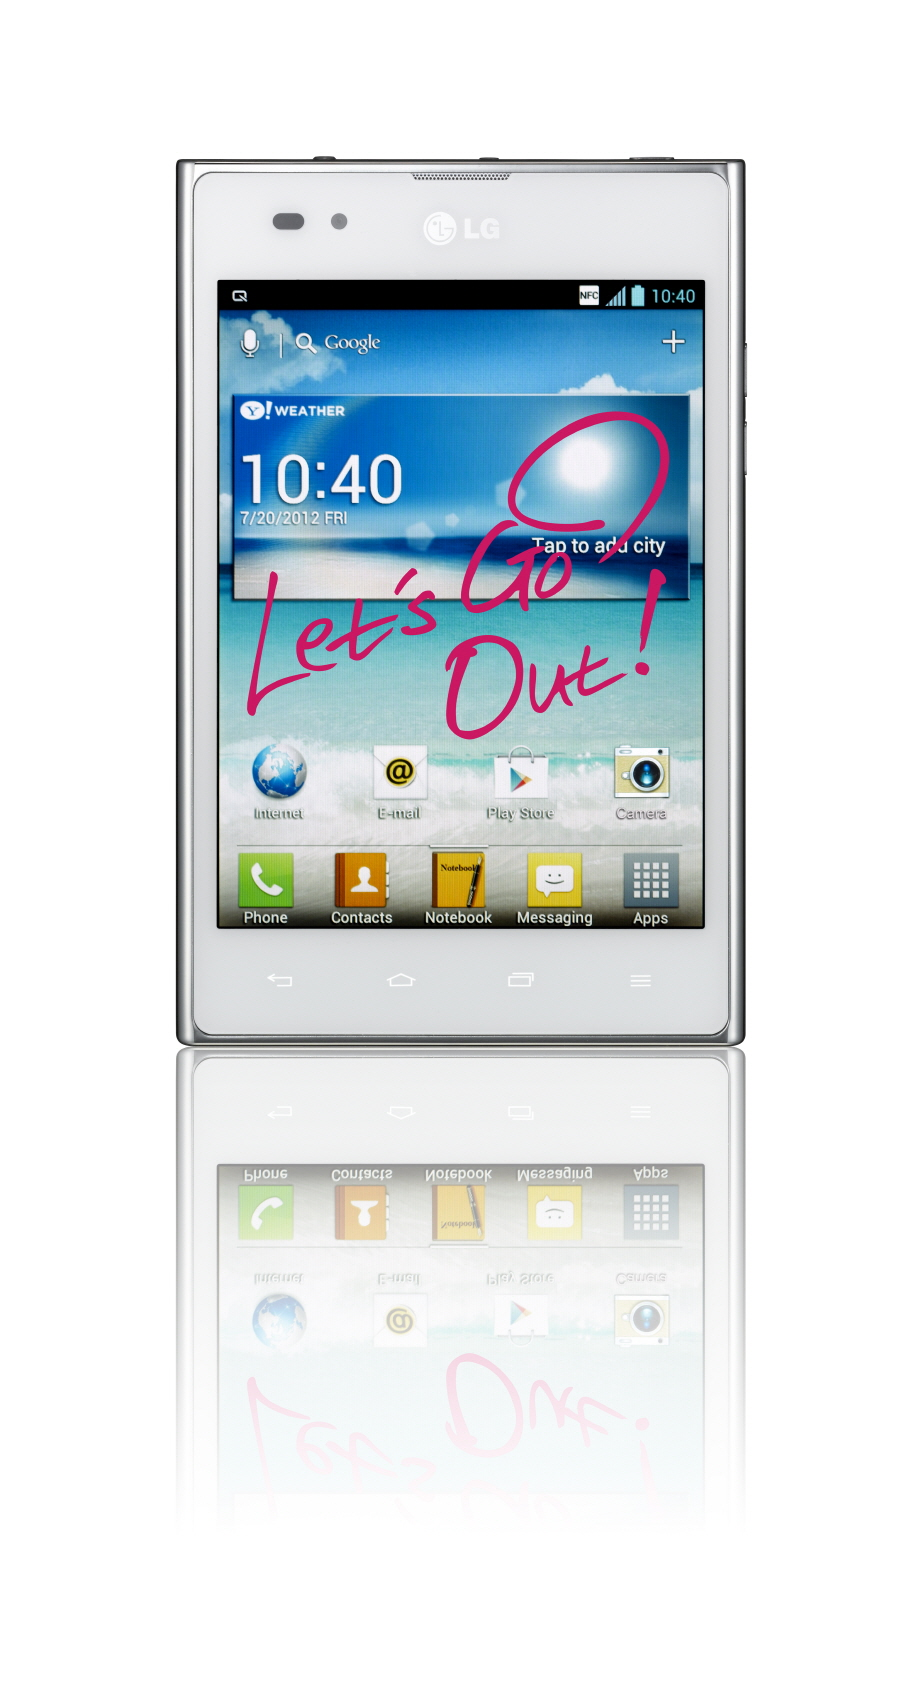 Front view of LG Optimus Vu: